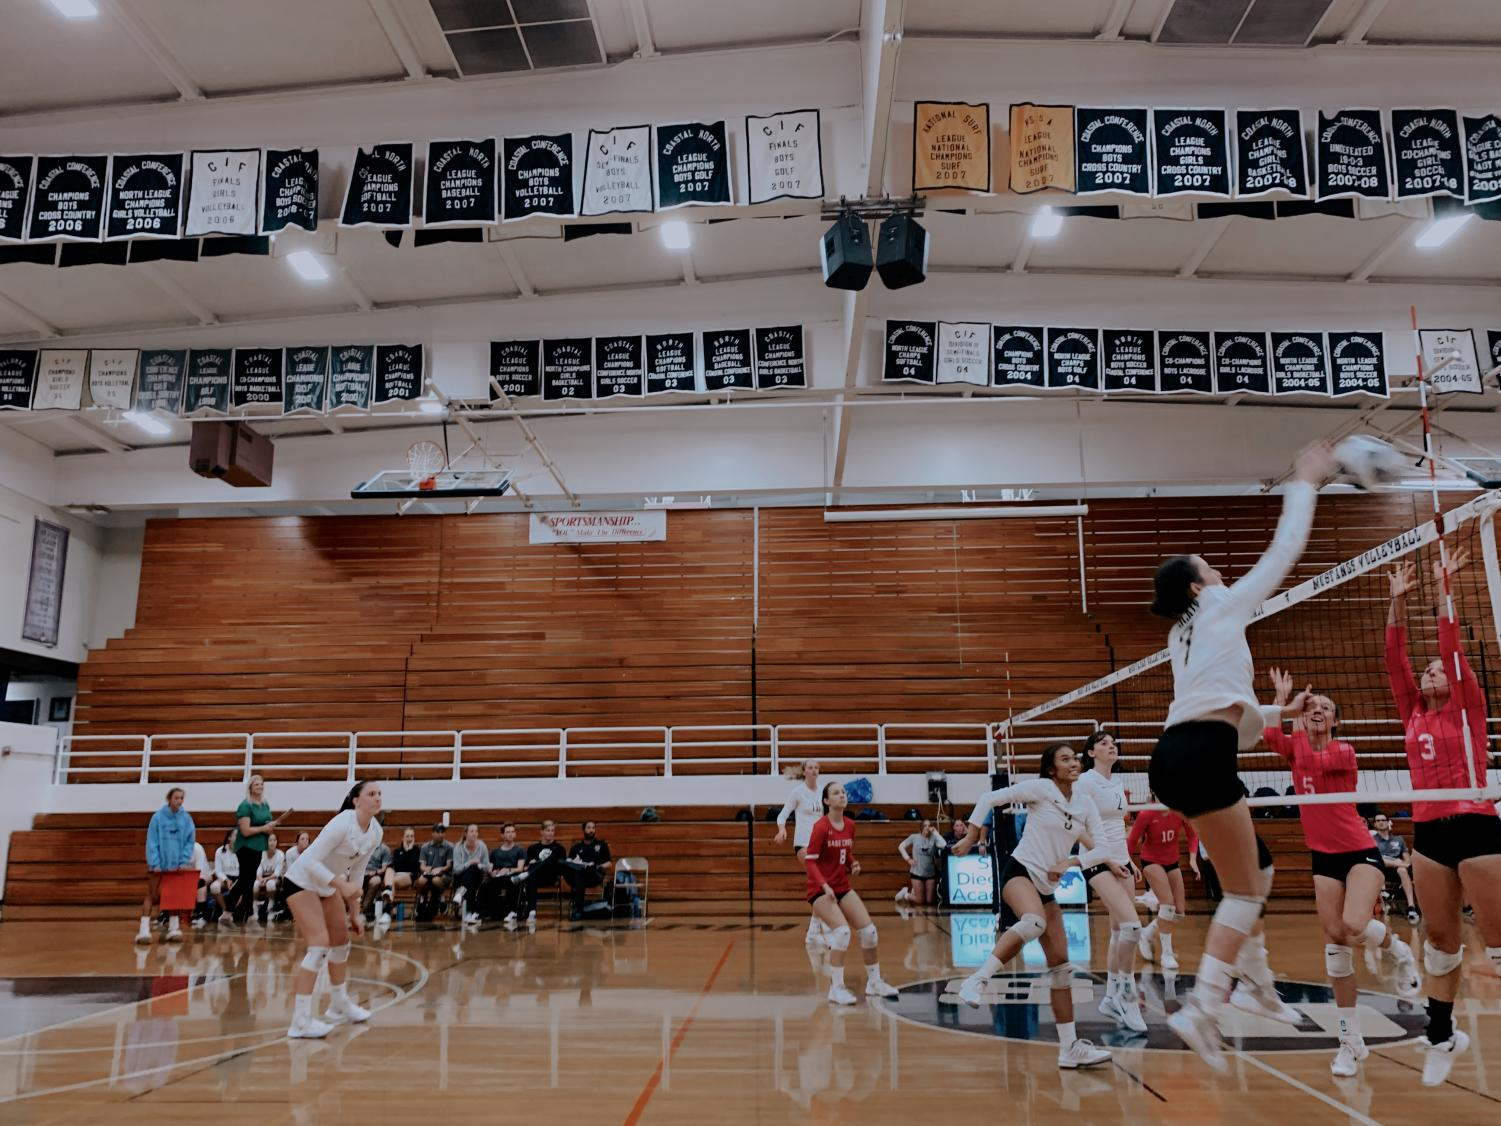 Senior+Sydney+Ahrendt+gets+a+kill+during+the+match.+Girls+volleyball+%28all+levels%29+won+their+matches+at+San+Dieguito+Academy+on+Oct.+3.+